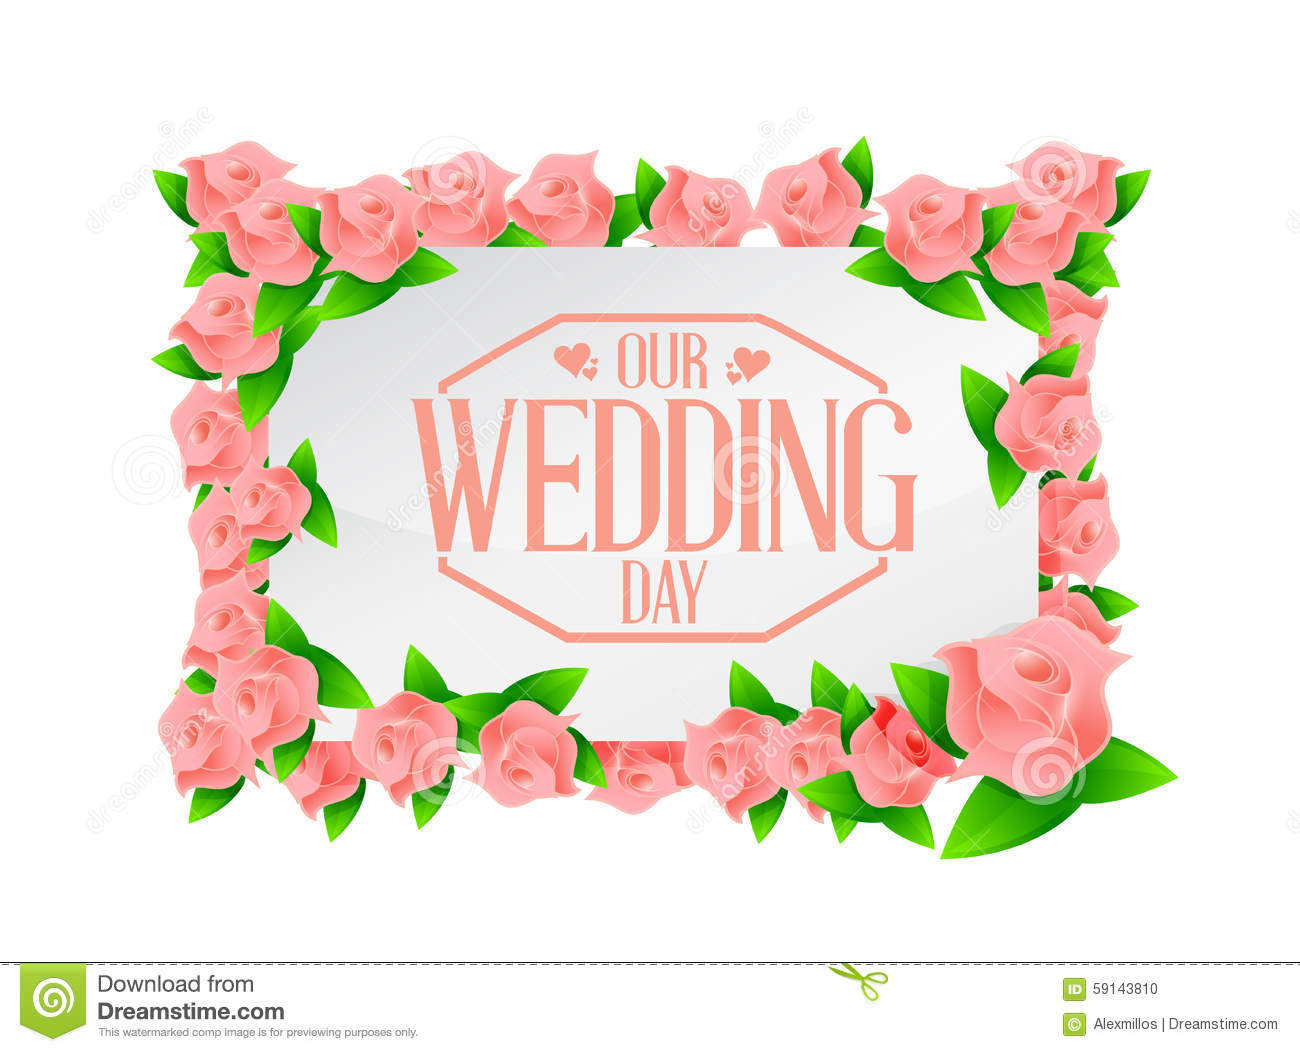 our wedding day pink flowers board illustration